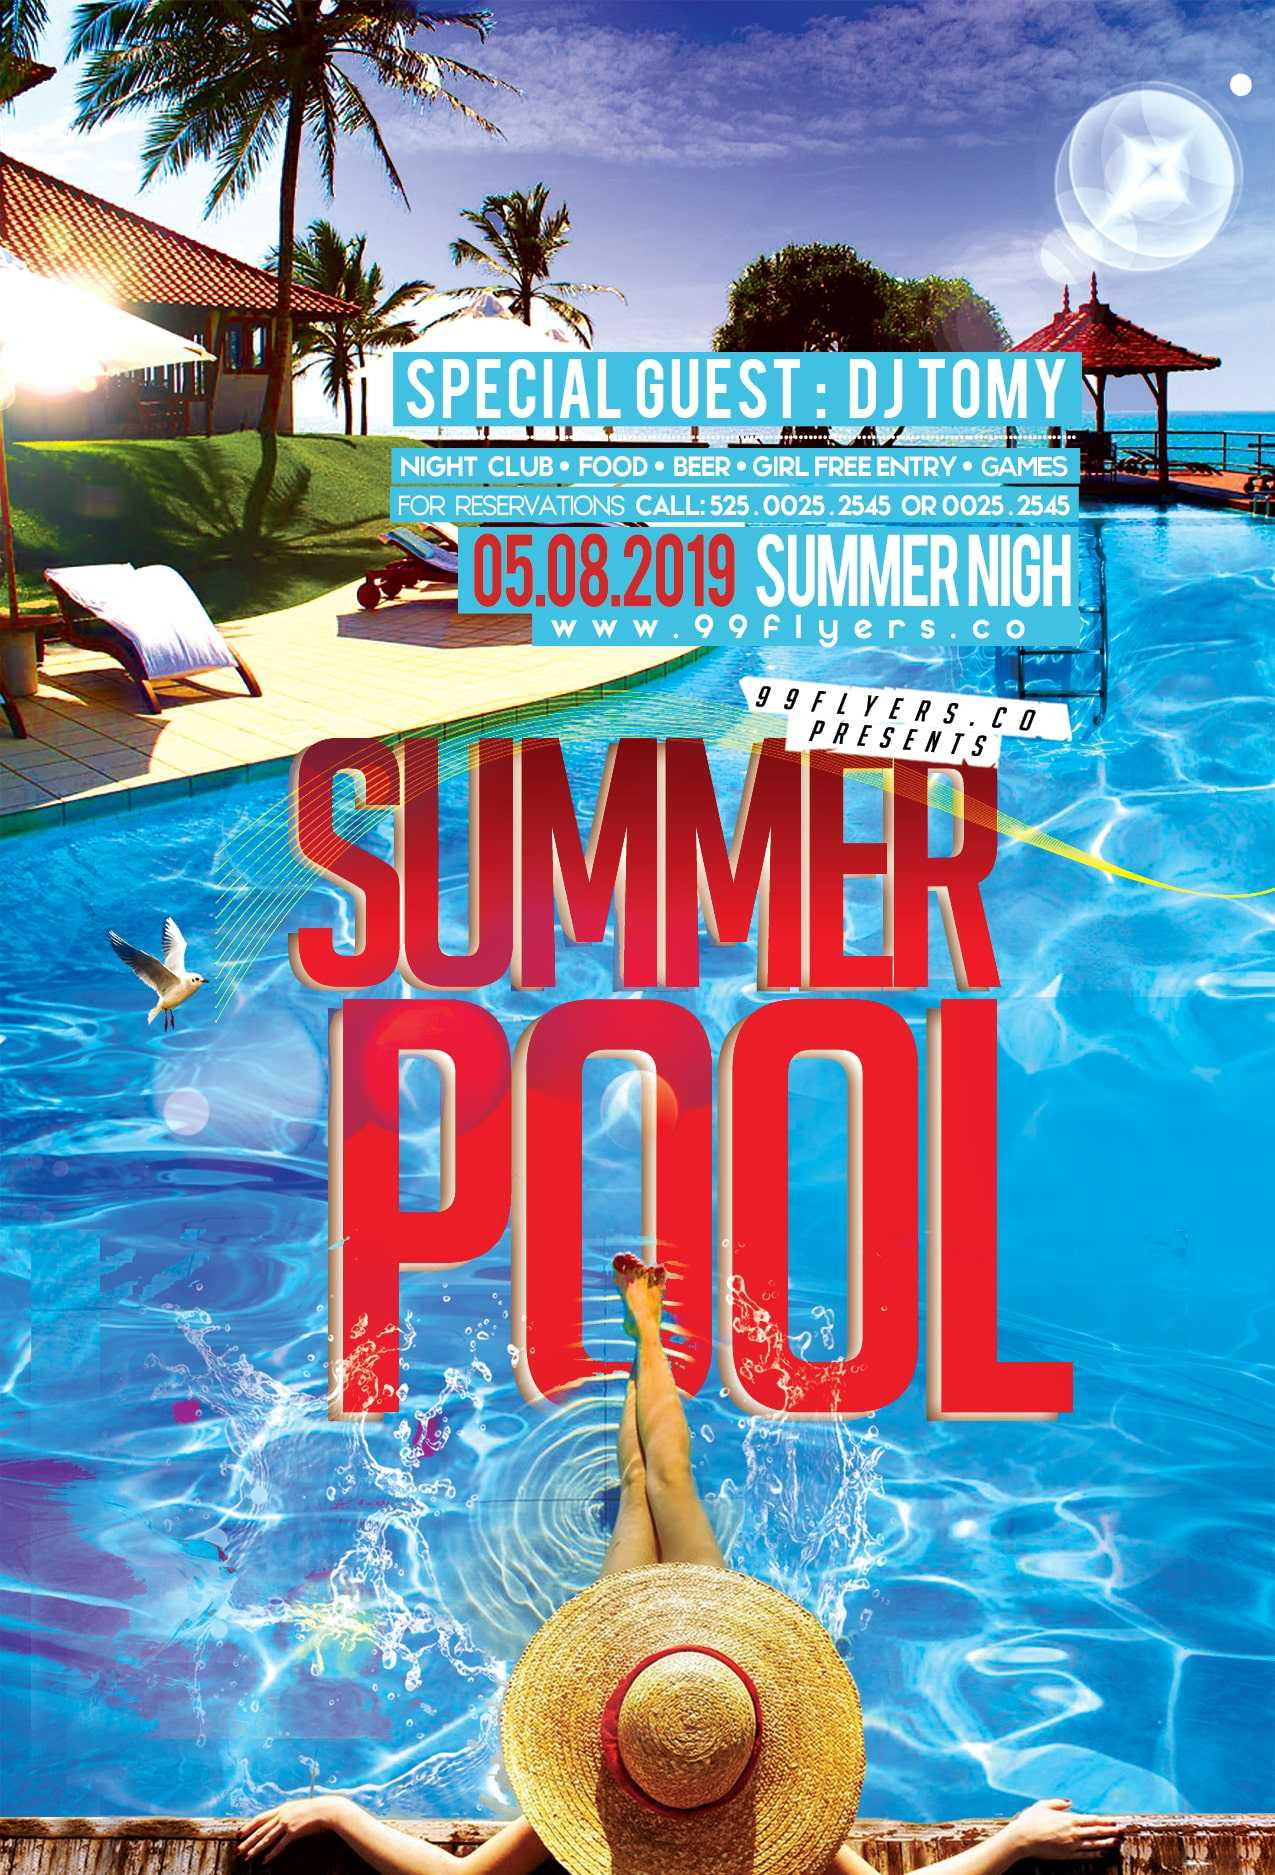 003 Template Ideas Dd5Gc23 Min Free Pool Party Flyer For Free Pool Party Flyer Templates